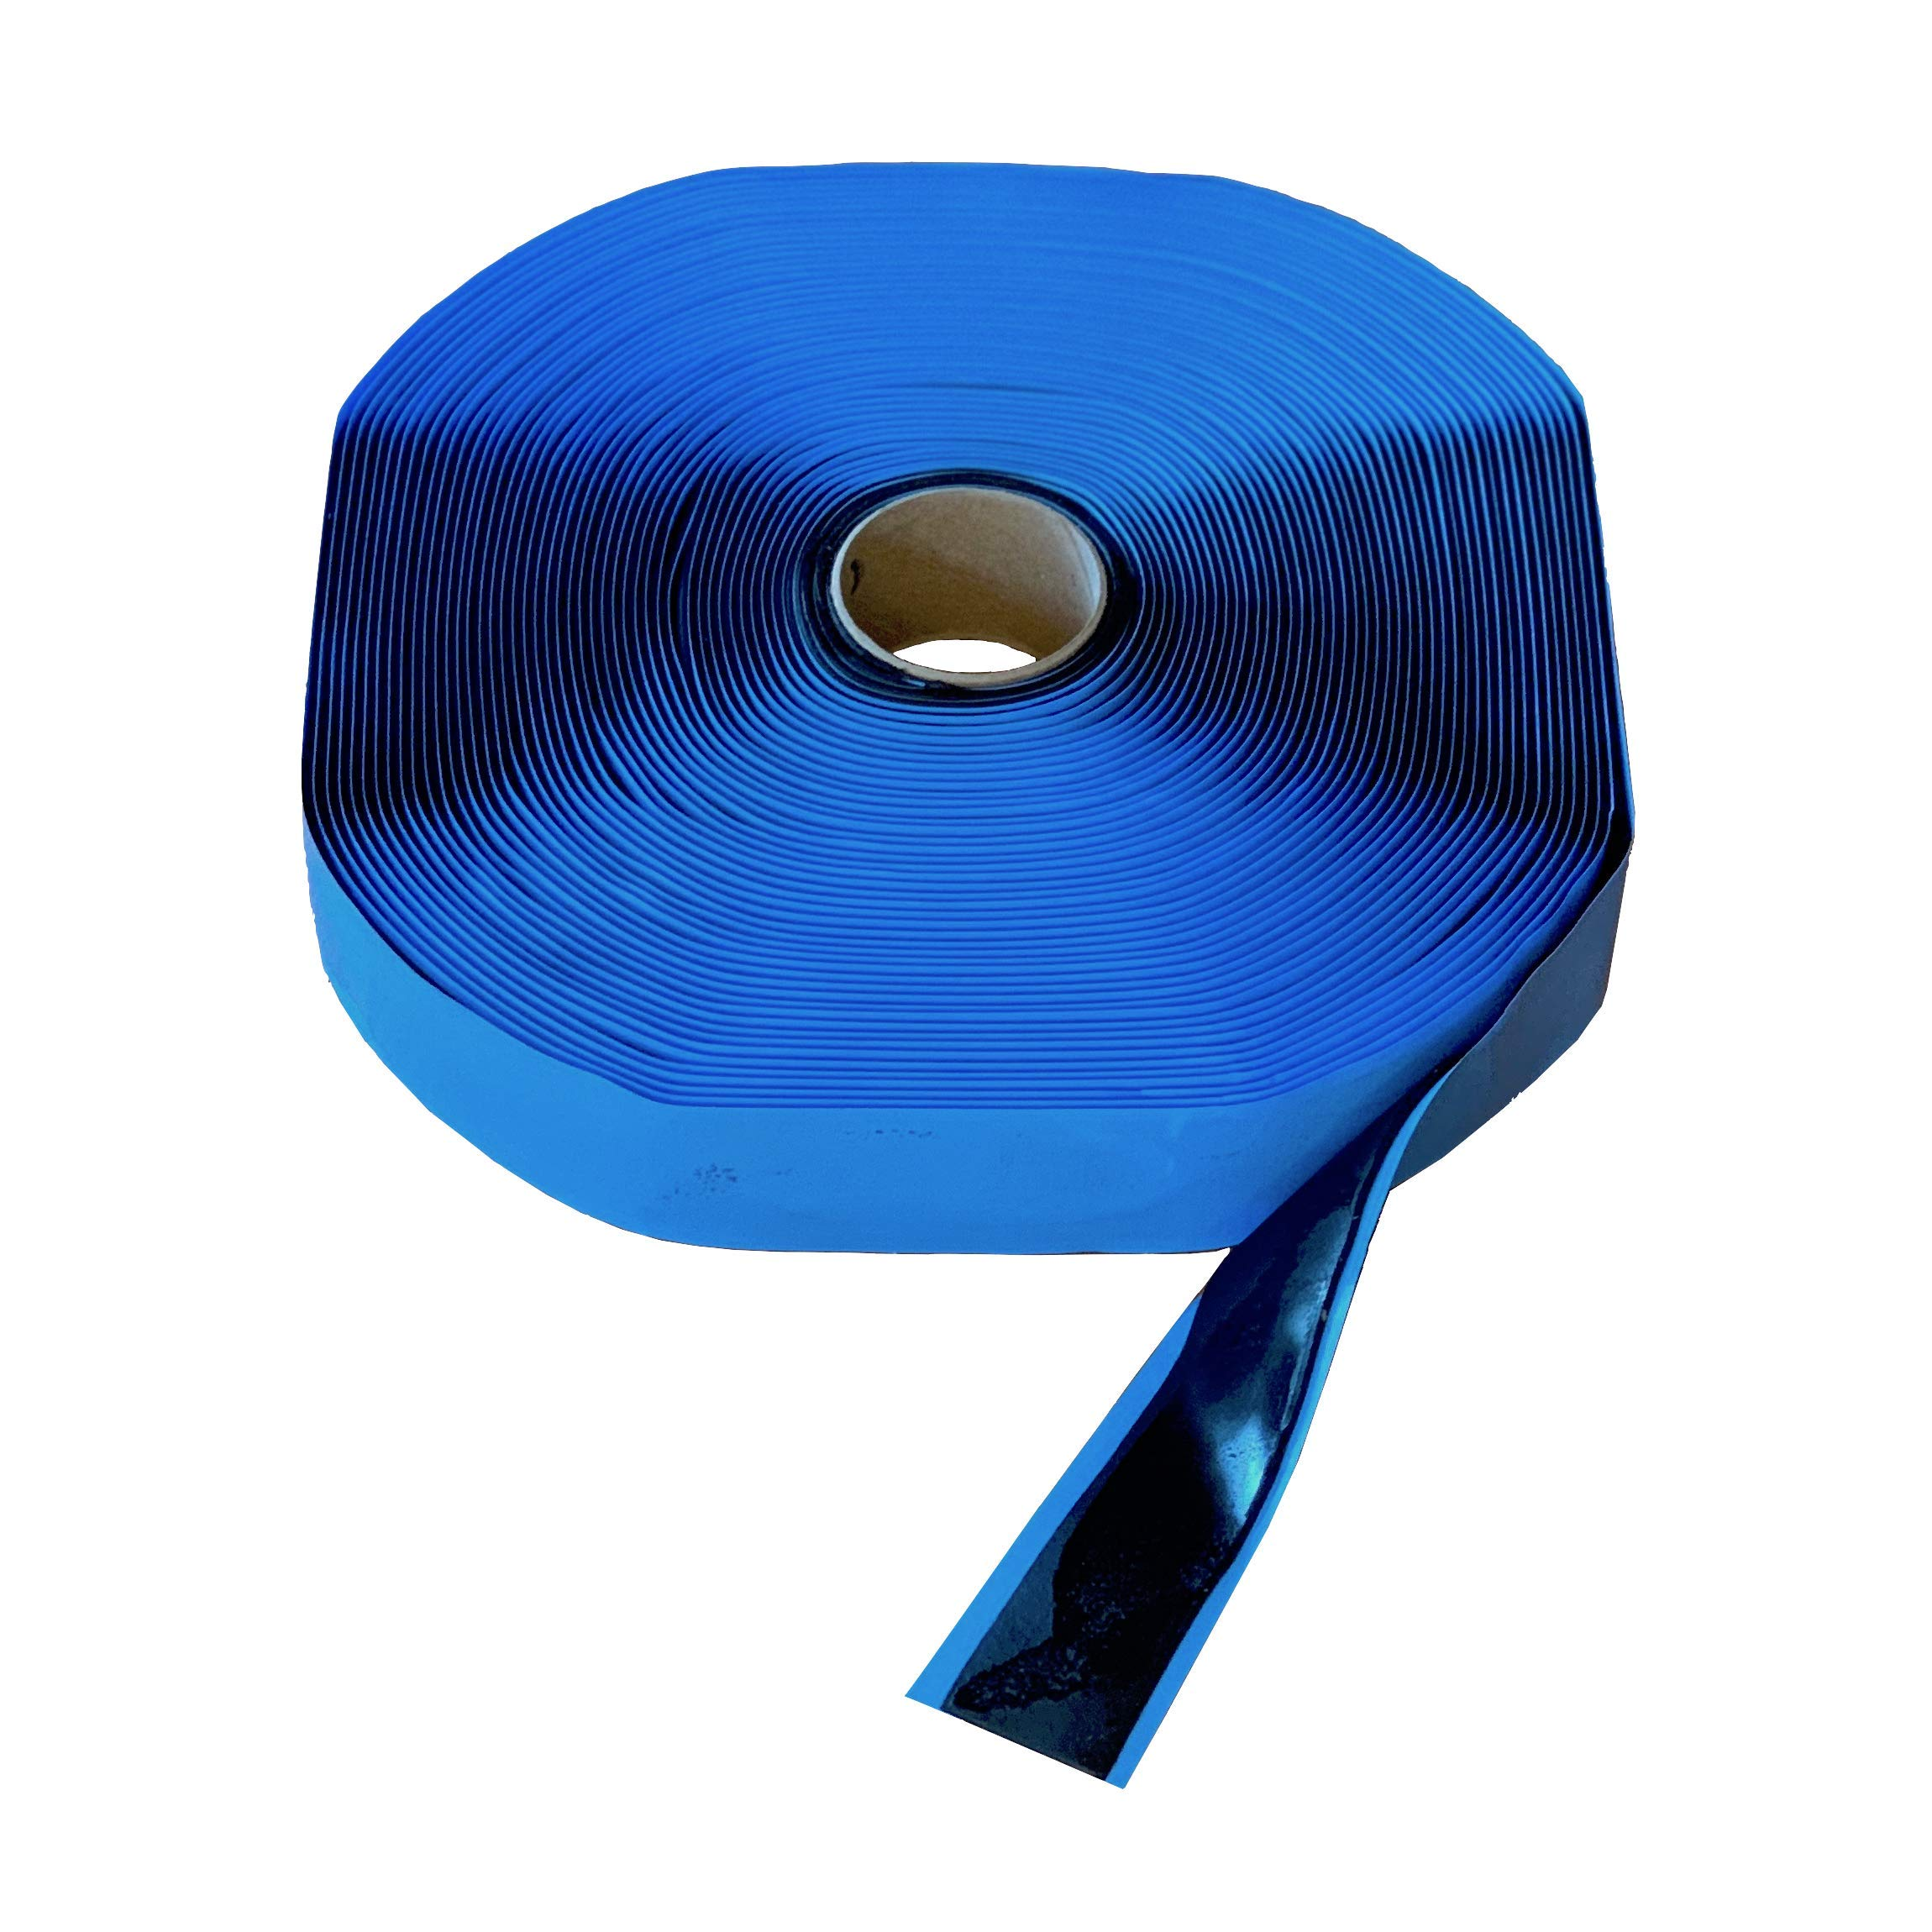 Imus Flex Butyl Rubber Putty Tape for Sealing, Waterproofing, Soundproofing, and Repairing (1/16'' x 1-3/8'' x 80' Roll) by Imus Industries, Inc.